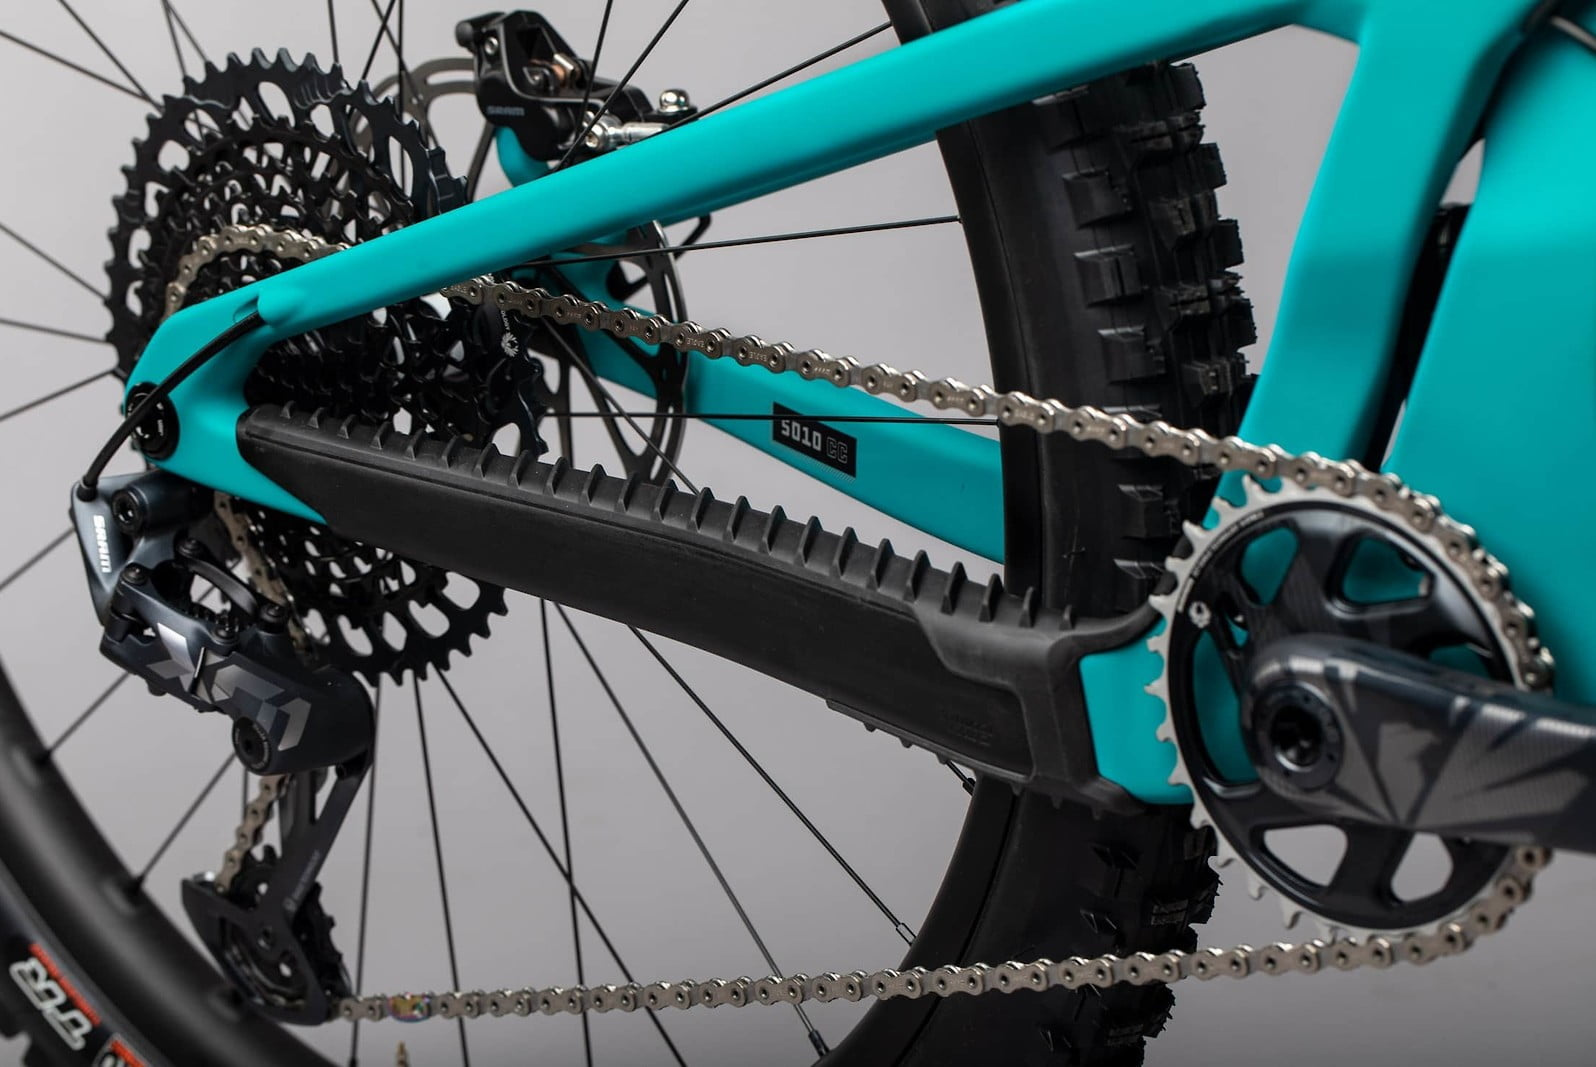 Review of Finn, the universal bracket for your bike